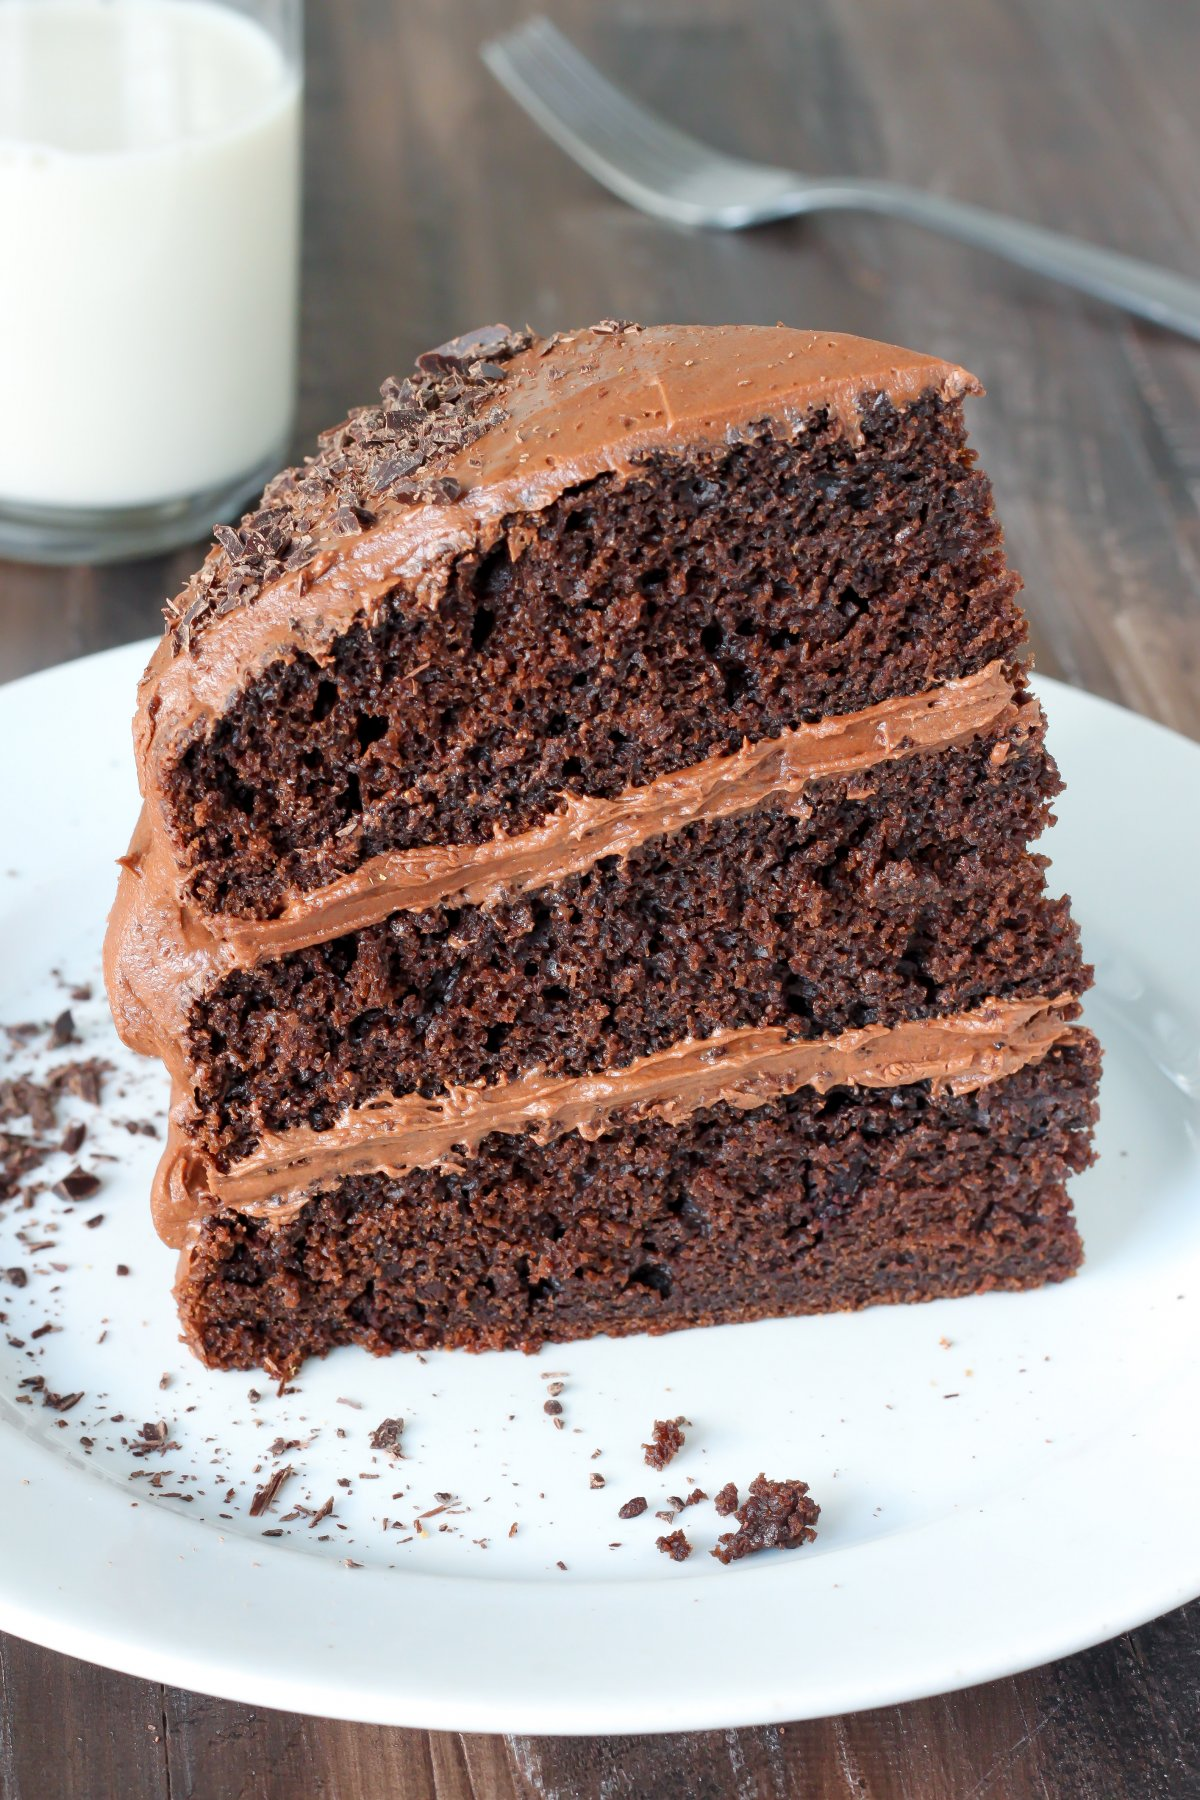 How Do You Make A Homemade Chocolate Cake